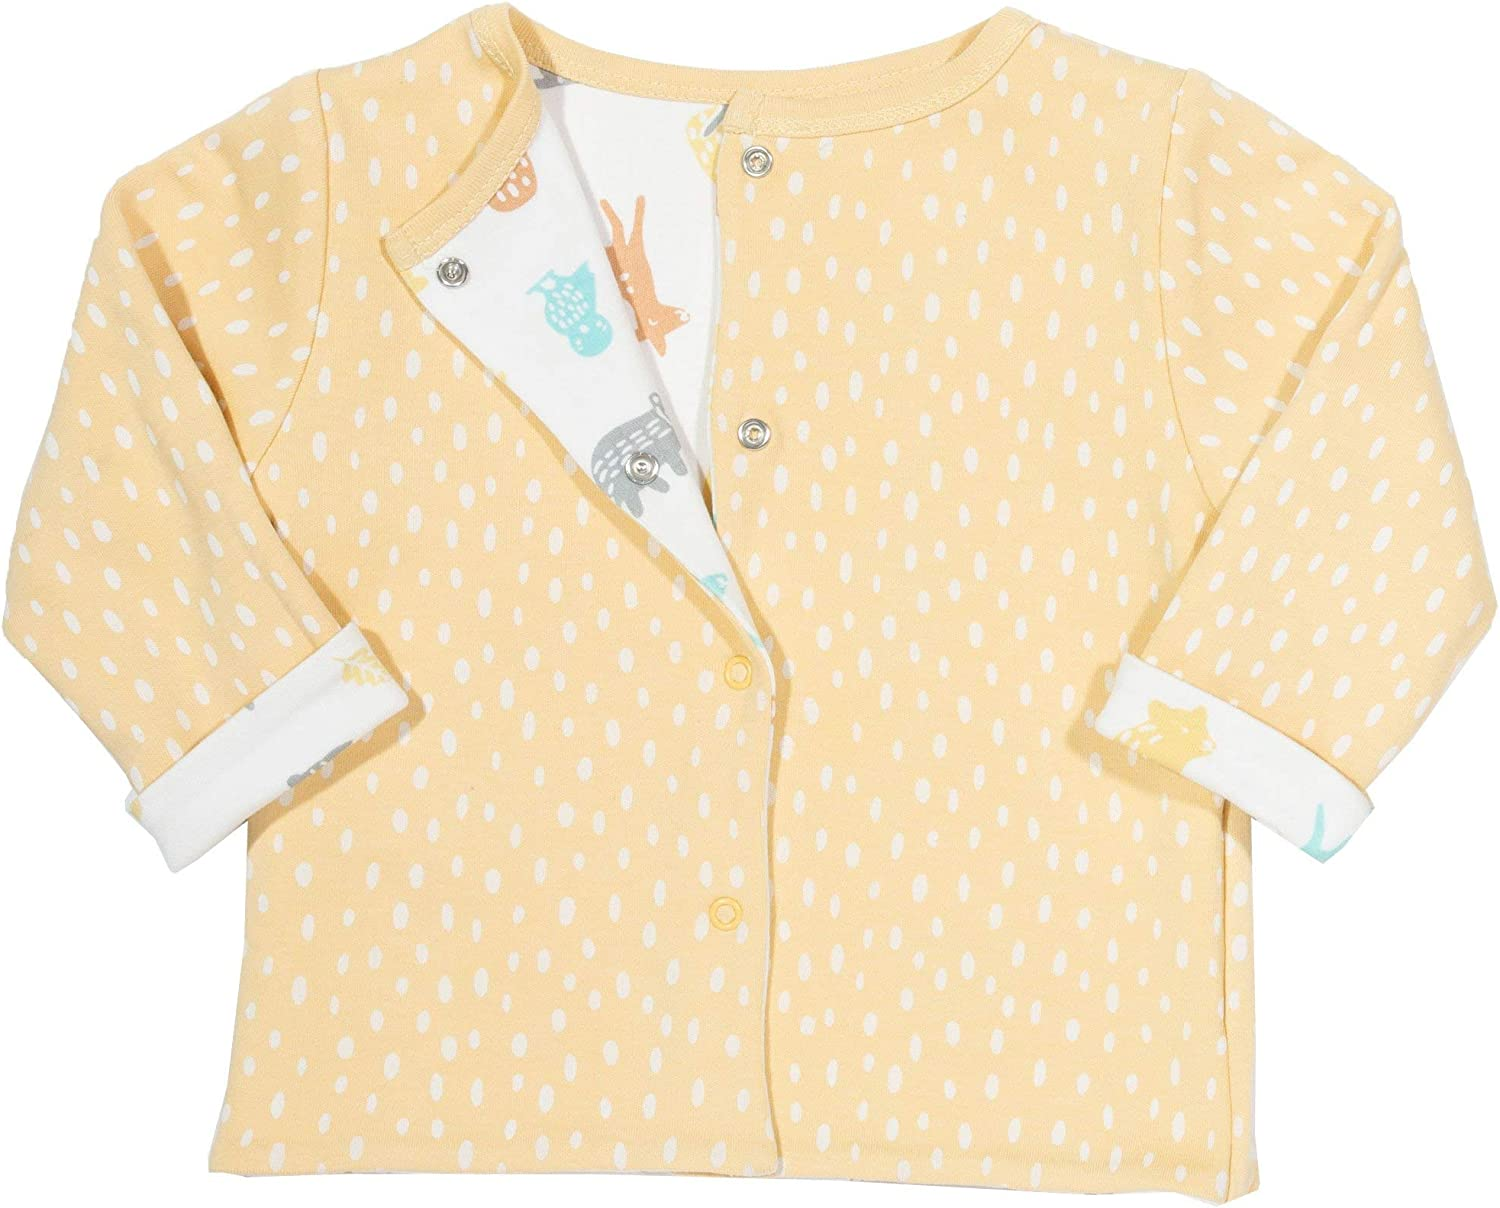 Newborn-24 Months Kite Baby Woodland 2-in-1 Jacket Organic